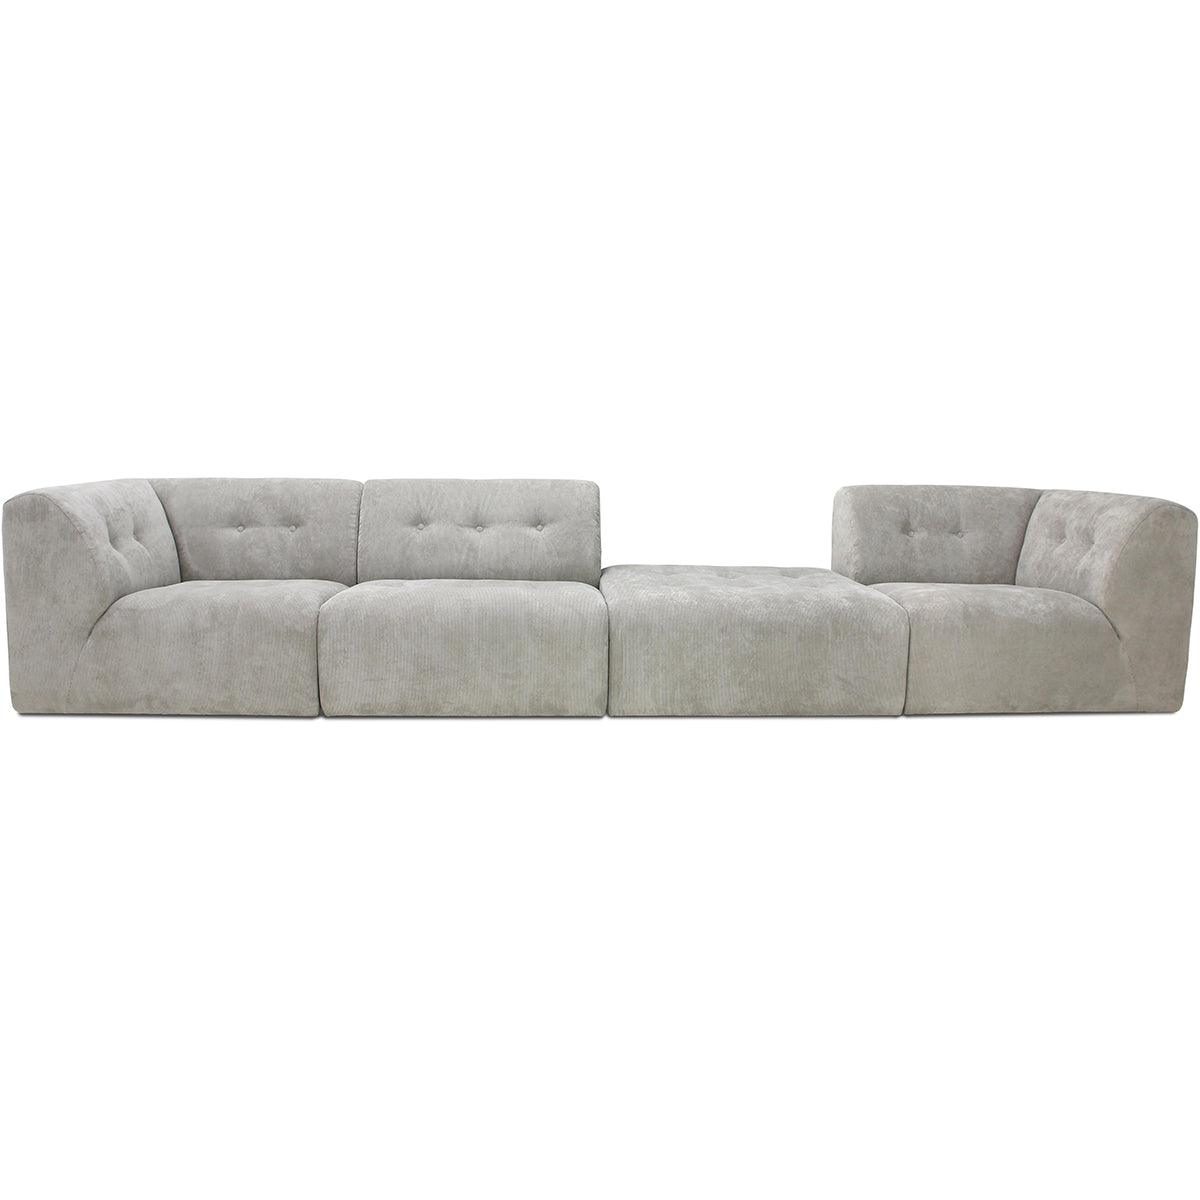 HK-Living vint couch: element left, corduroy rib, cream